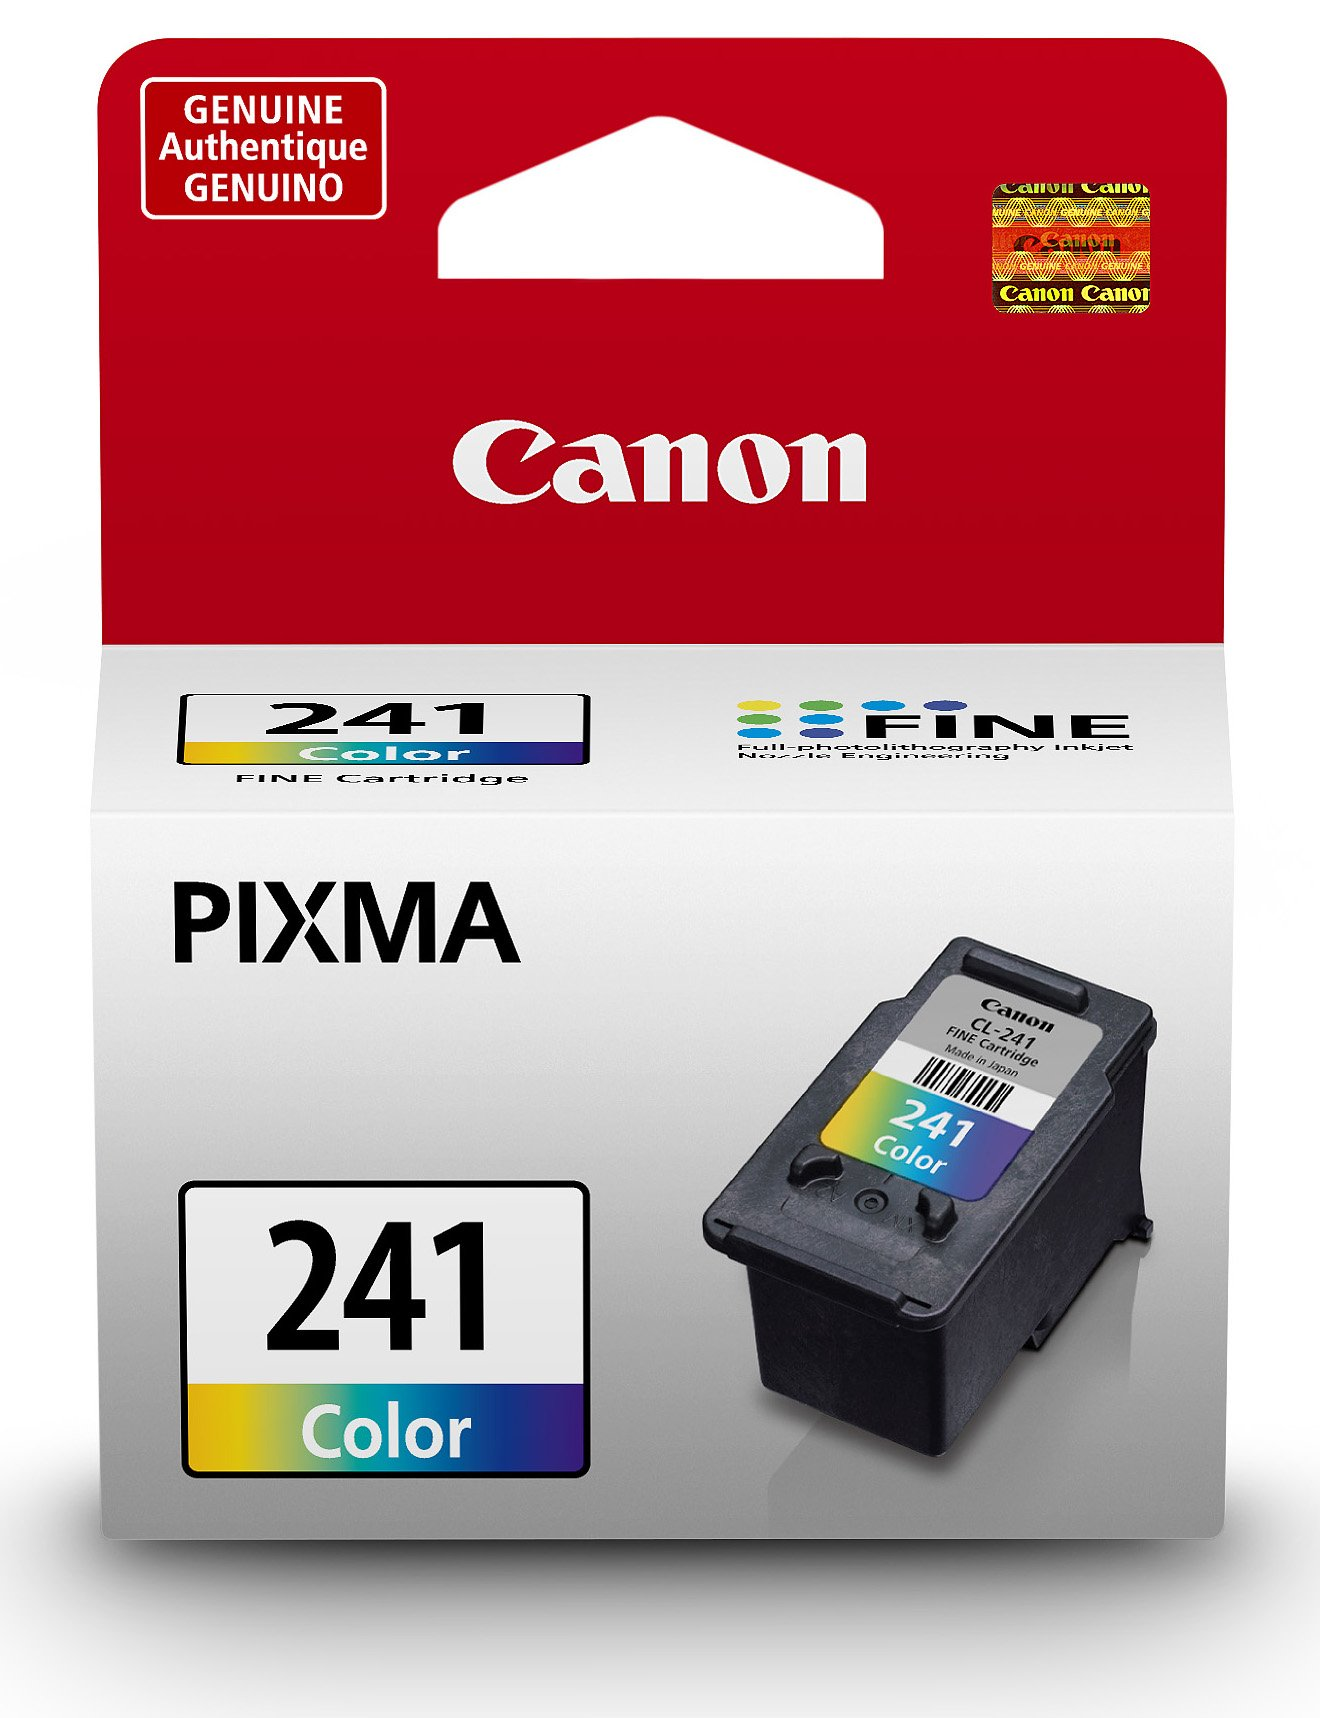 Canon CL-241 Color Ink Cartridge, Compatible to MG3620, MG3520,MG4220,MG3220,MG2220, MG4120,MG3120 and MG2120 by Canon (Image #1)